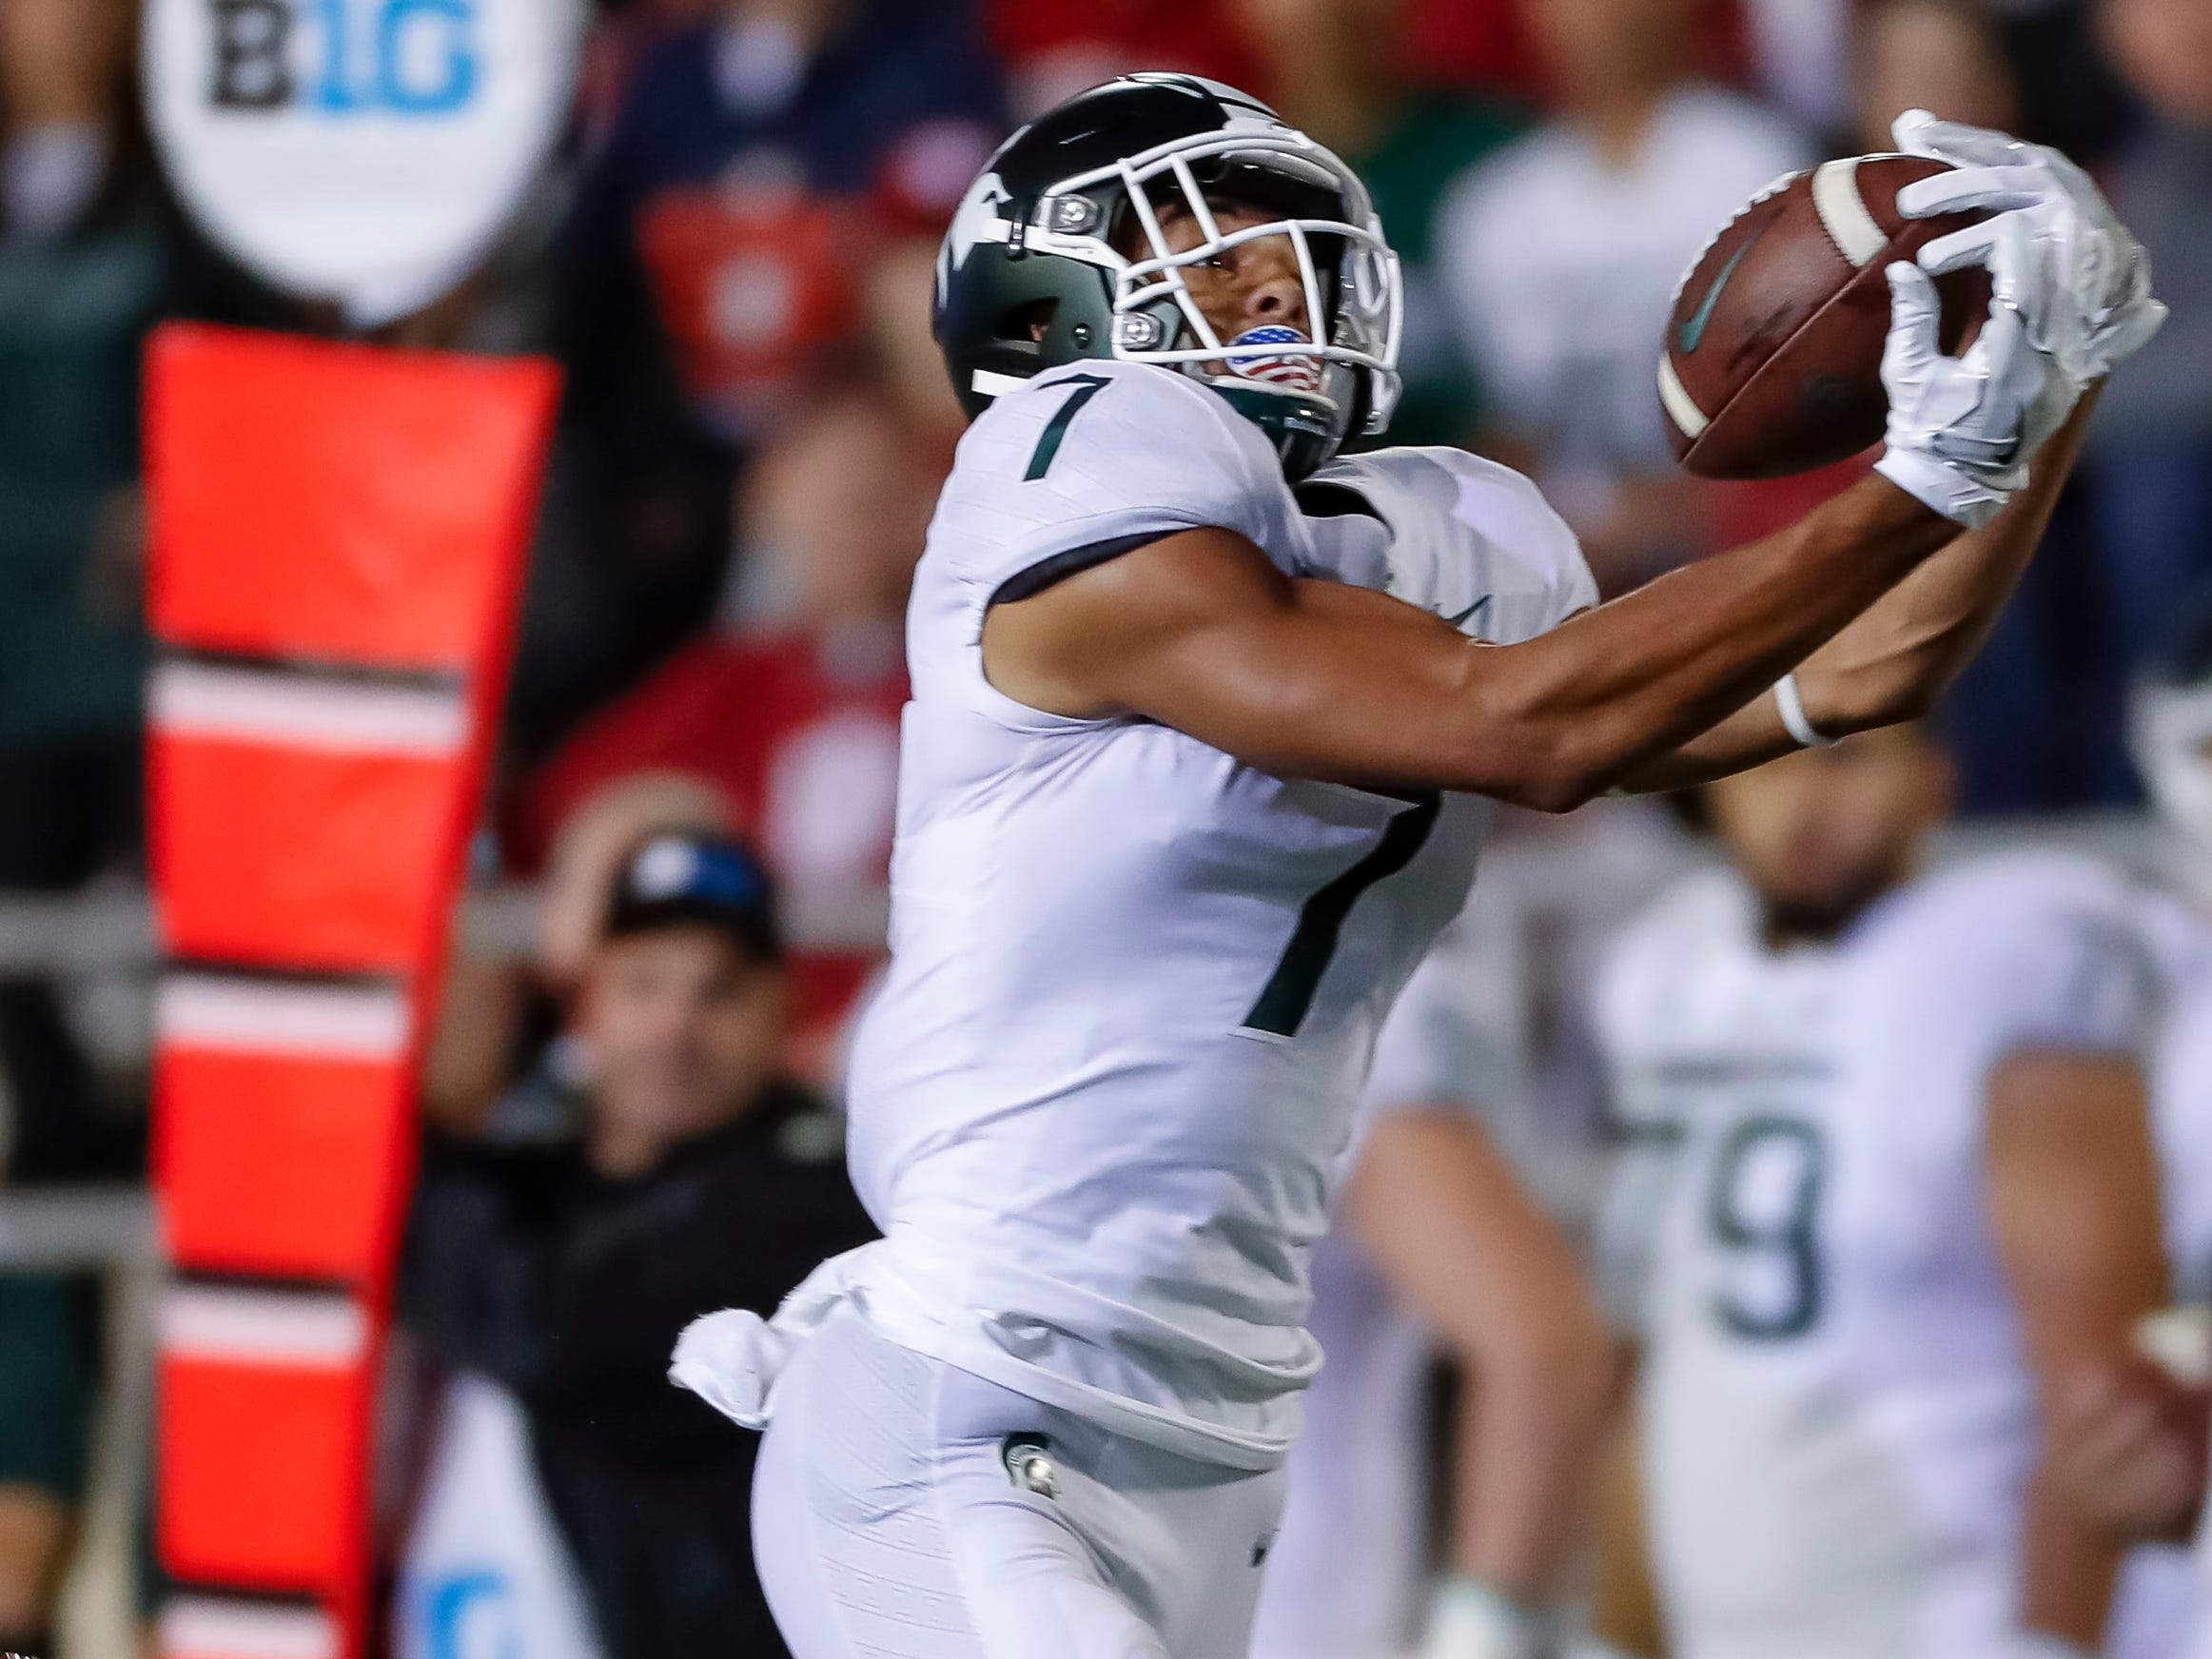 Cody White #7 of the Michigan State Spartans catches a pass during the first quarter of action against the Indiana Hoosiers at Memorial Stadium on September 22, 2018 in Bloomington, Indiana.